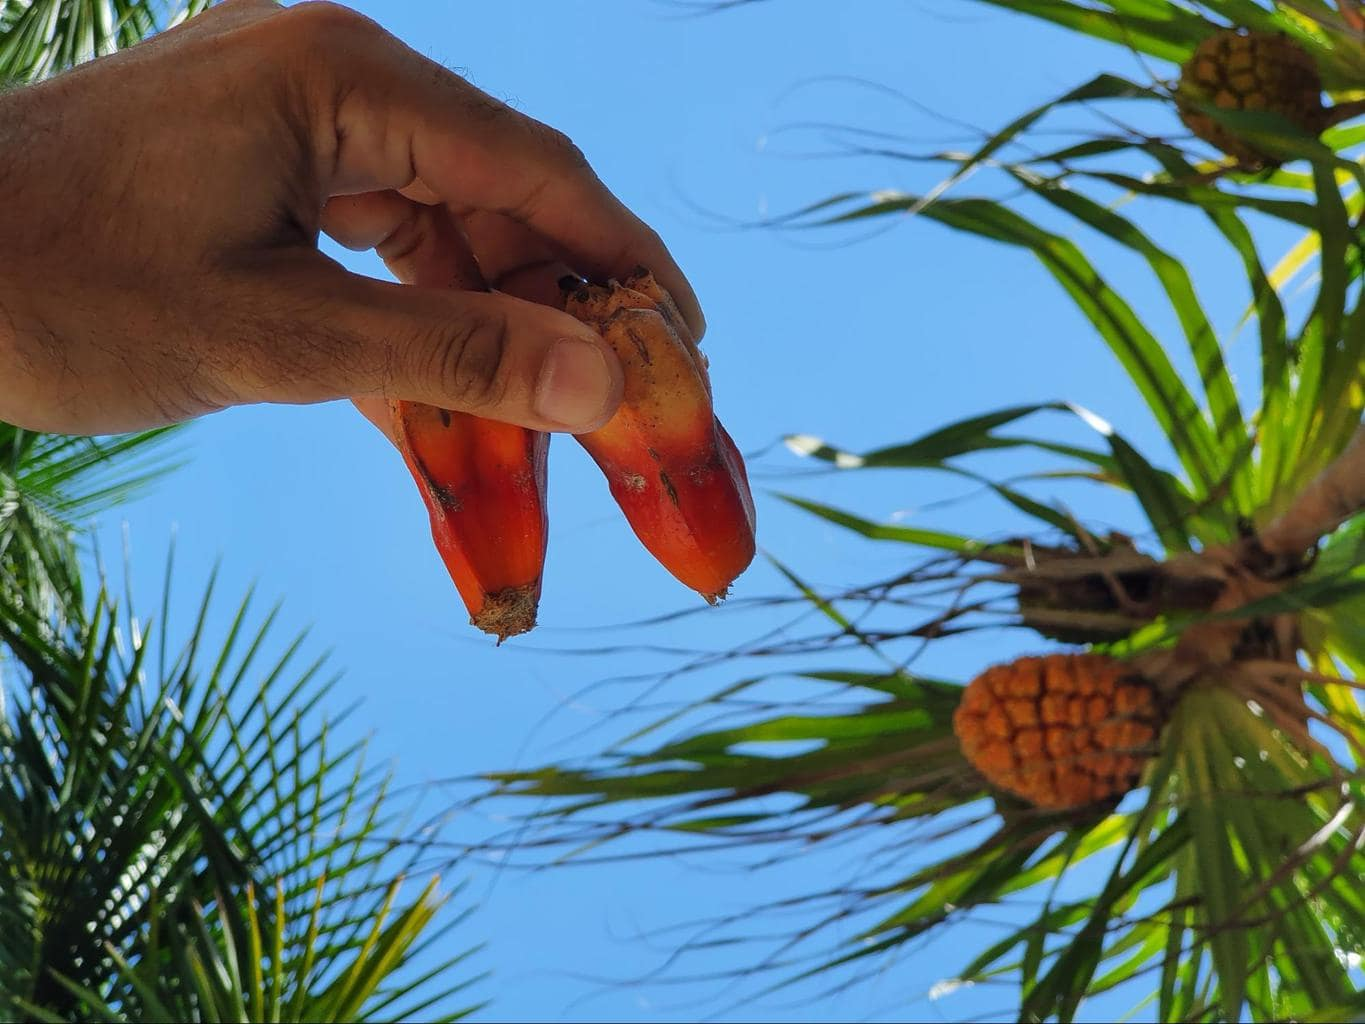 Screwpine or hala fruit